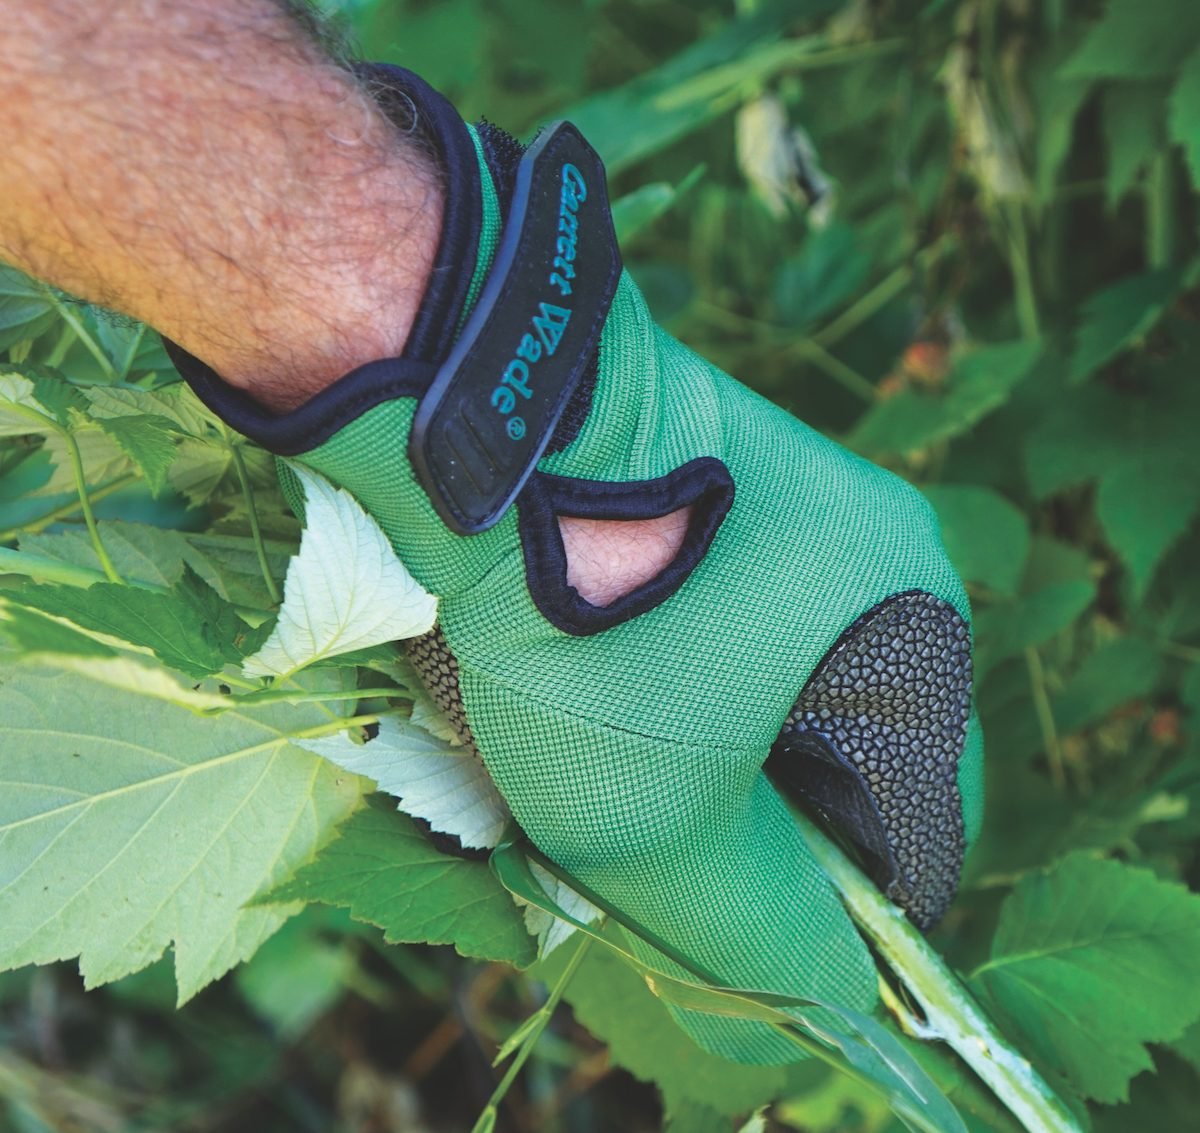 Gardening gloves protect hands from sharp thorns.